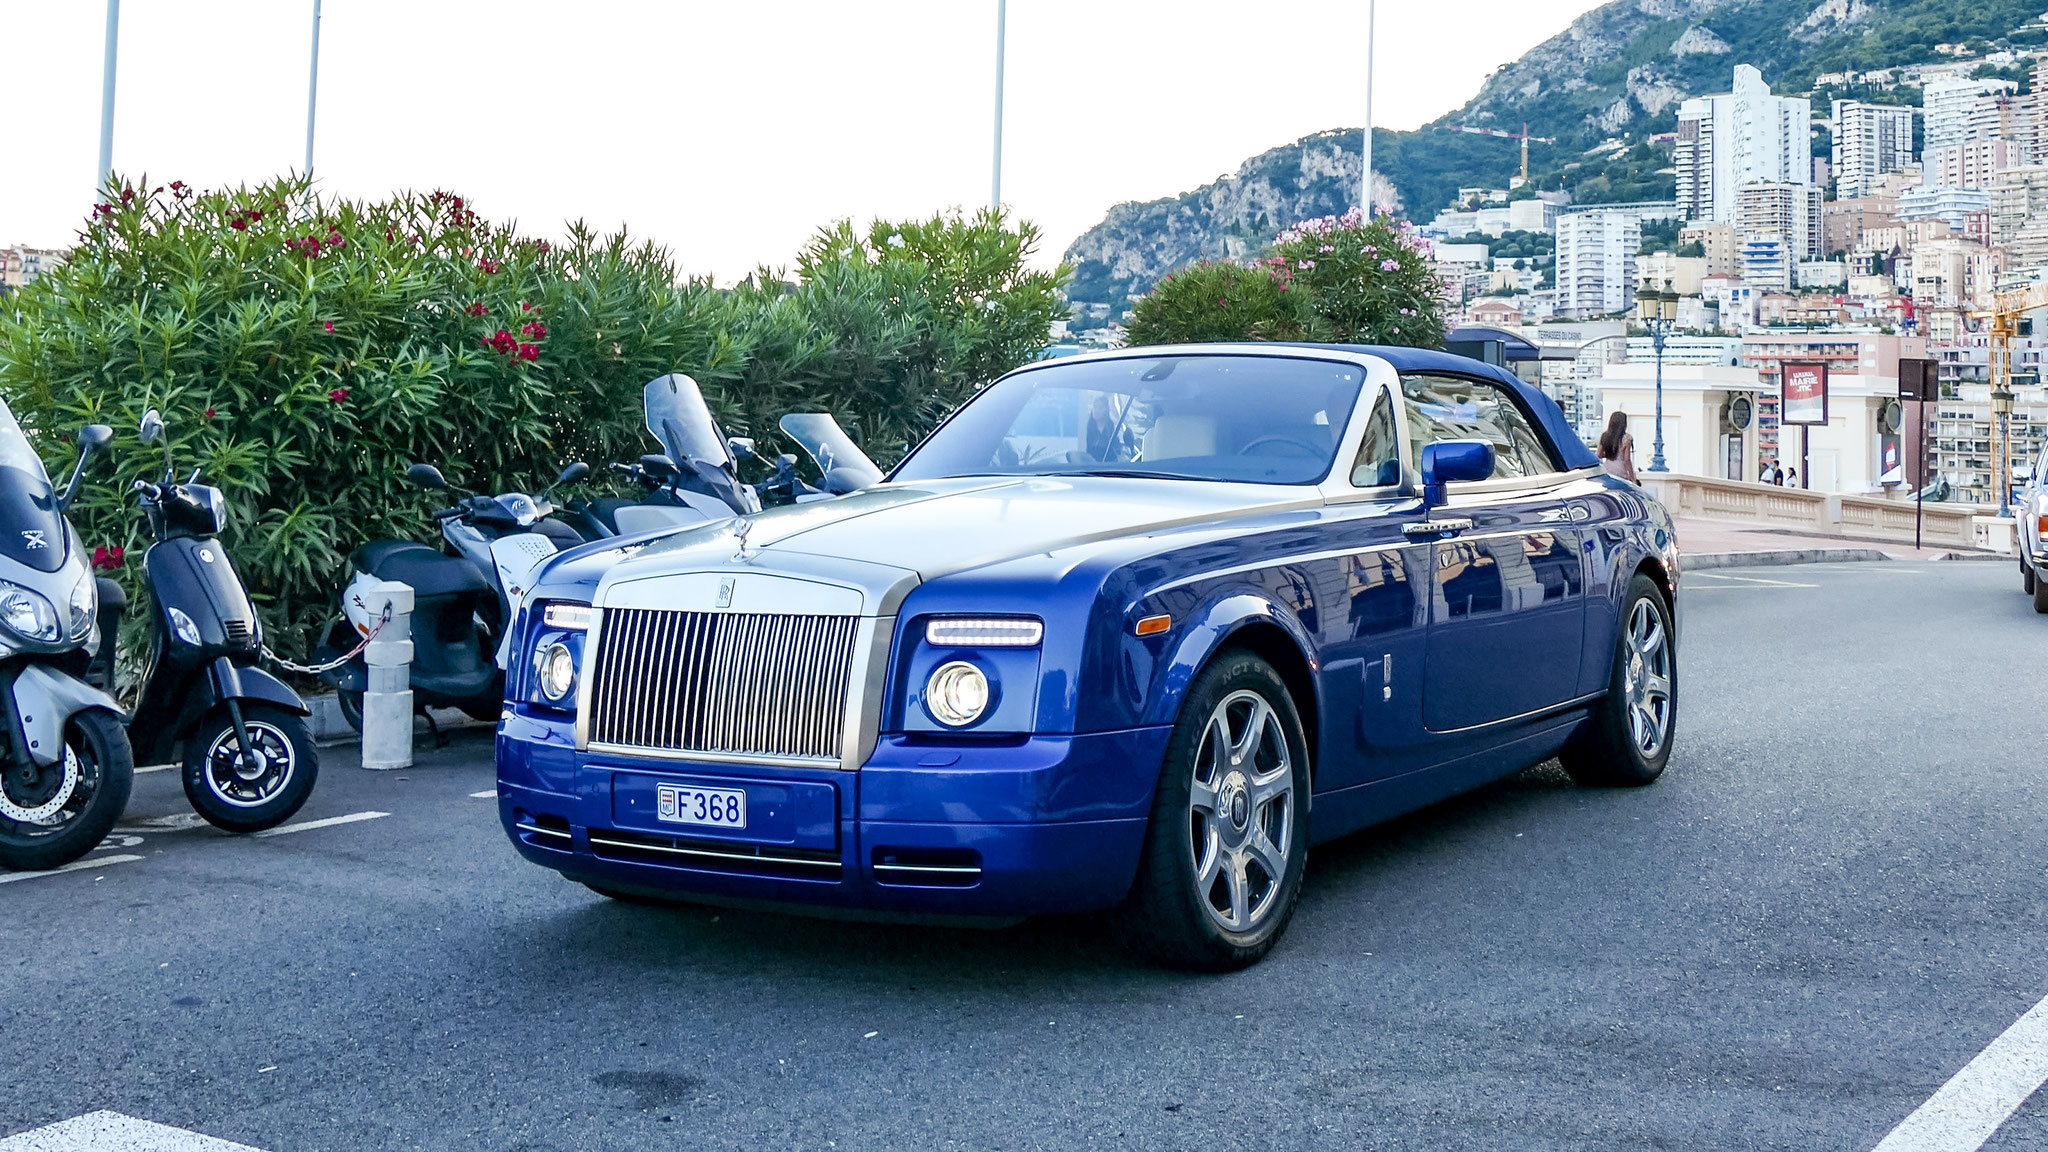 Rolls Royce Drophead - F368 (MC)